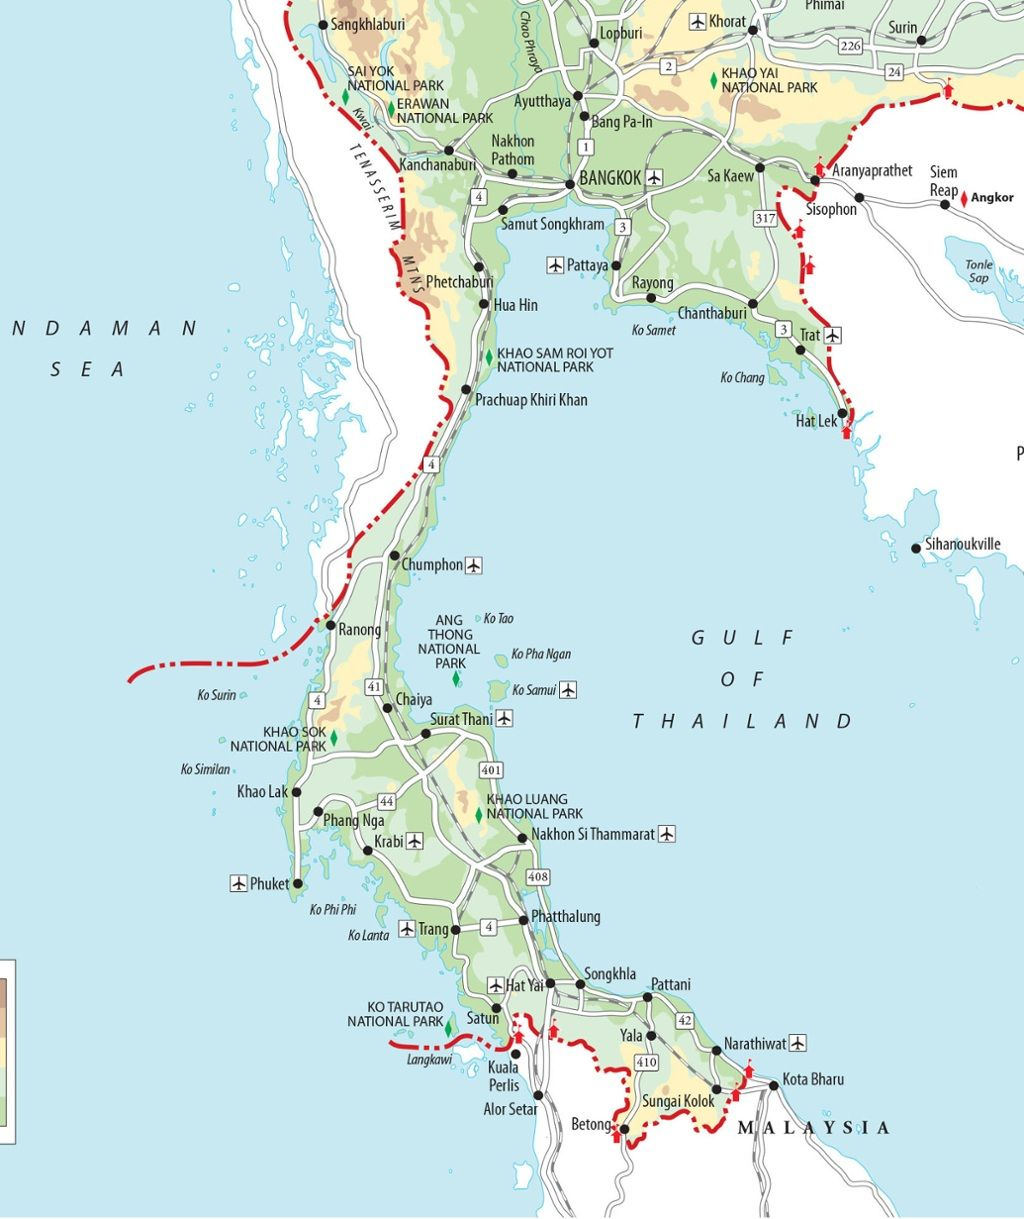 Map Of Thailand South Islands Top 20: Thailand's best islands to visit | Places | Thai islands